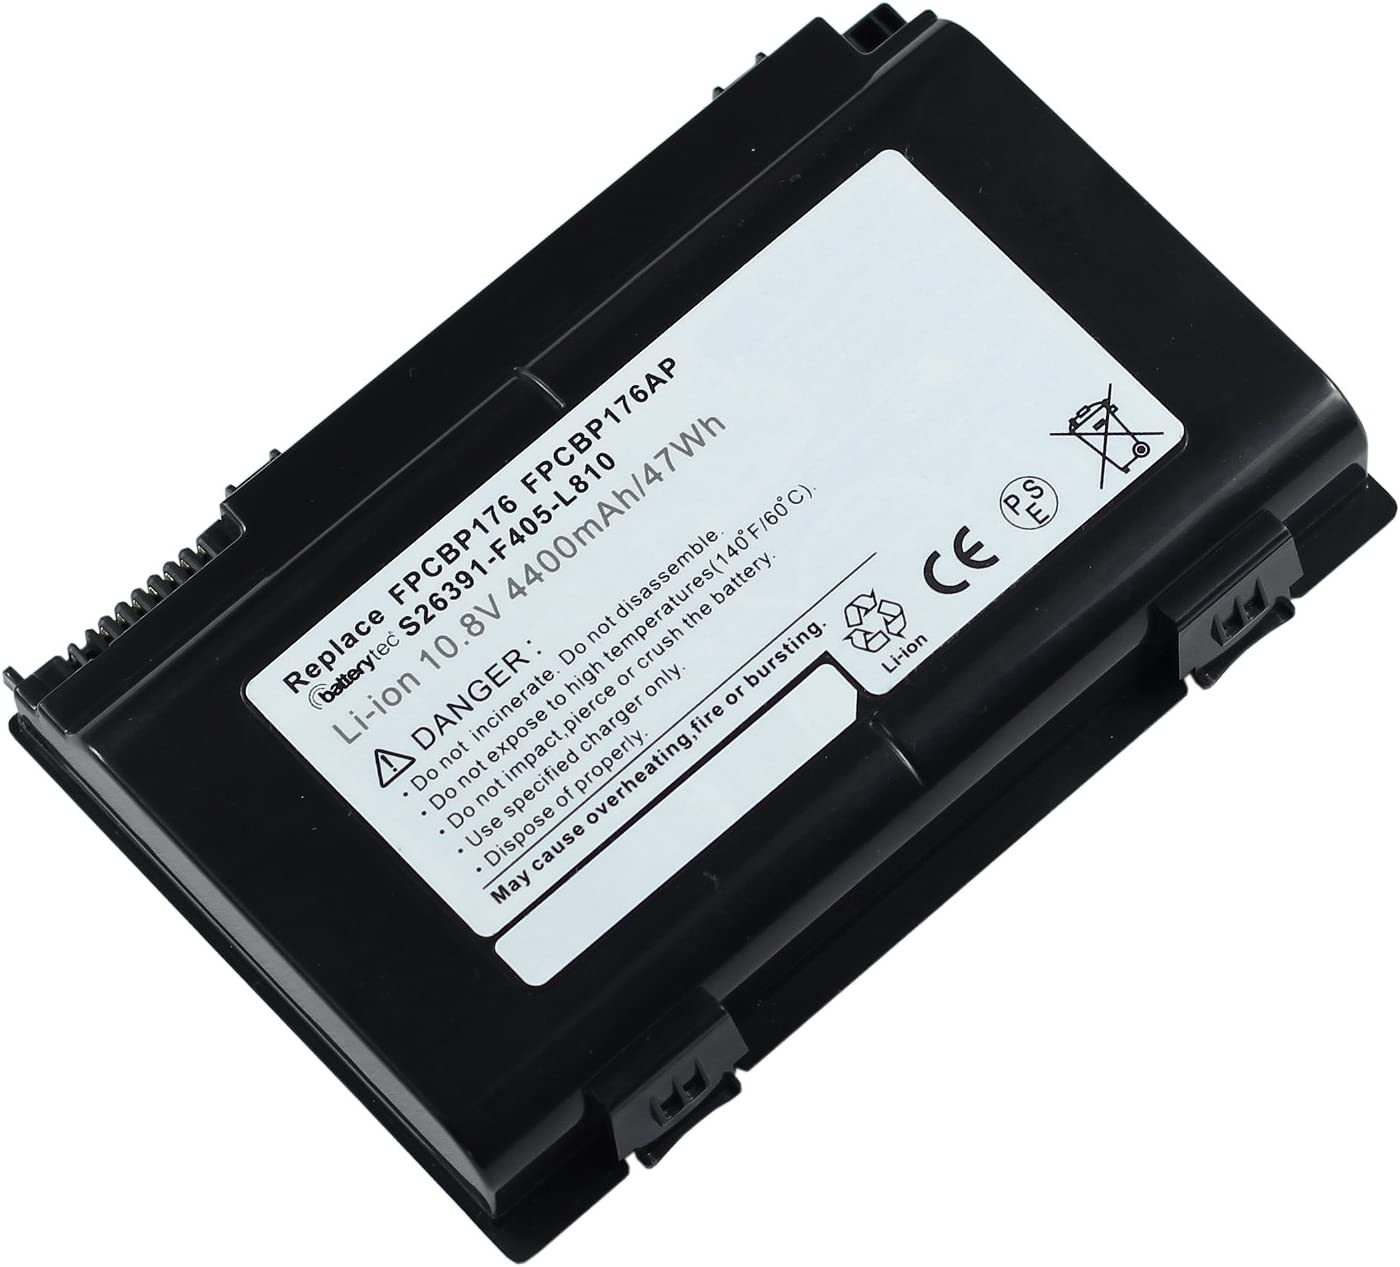 Celsius H700 H710 H910 Mobile Workstation H920 Series; 0644680 CP335276-01 CP335284-01 CP335319-01 FPB0145-01 FPCBP175 Batterytec/® Laptop Battery for FUJITSU LifeBook A1220 A530 A6210 A6220 A6230 AH530 AH550 E780 E8410 E8420 E8420E E8420LA N7010 NH570